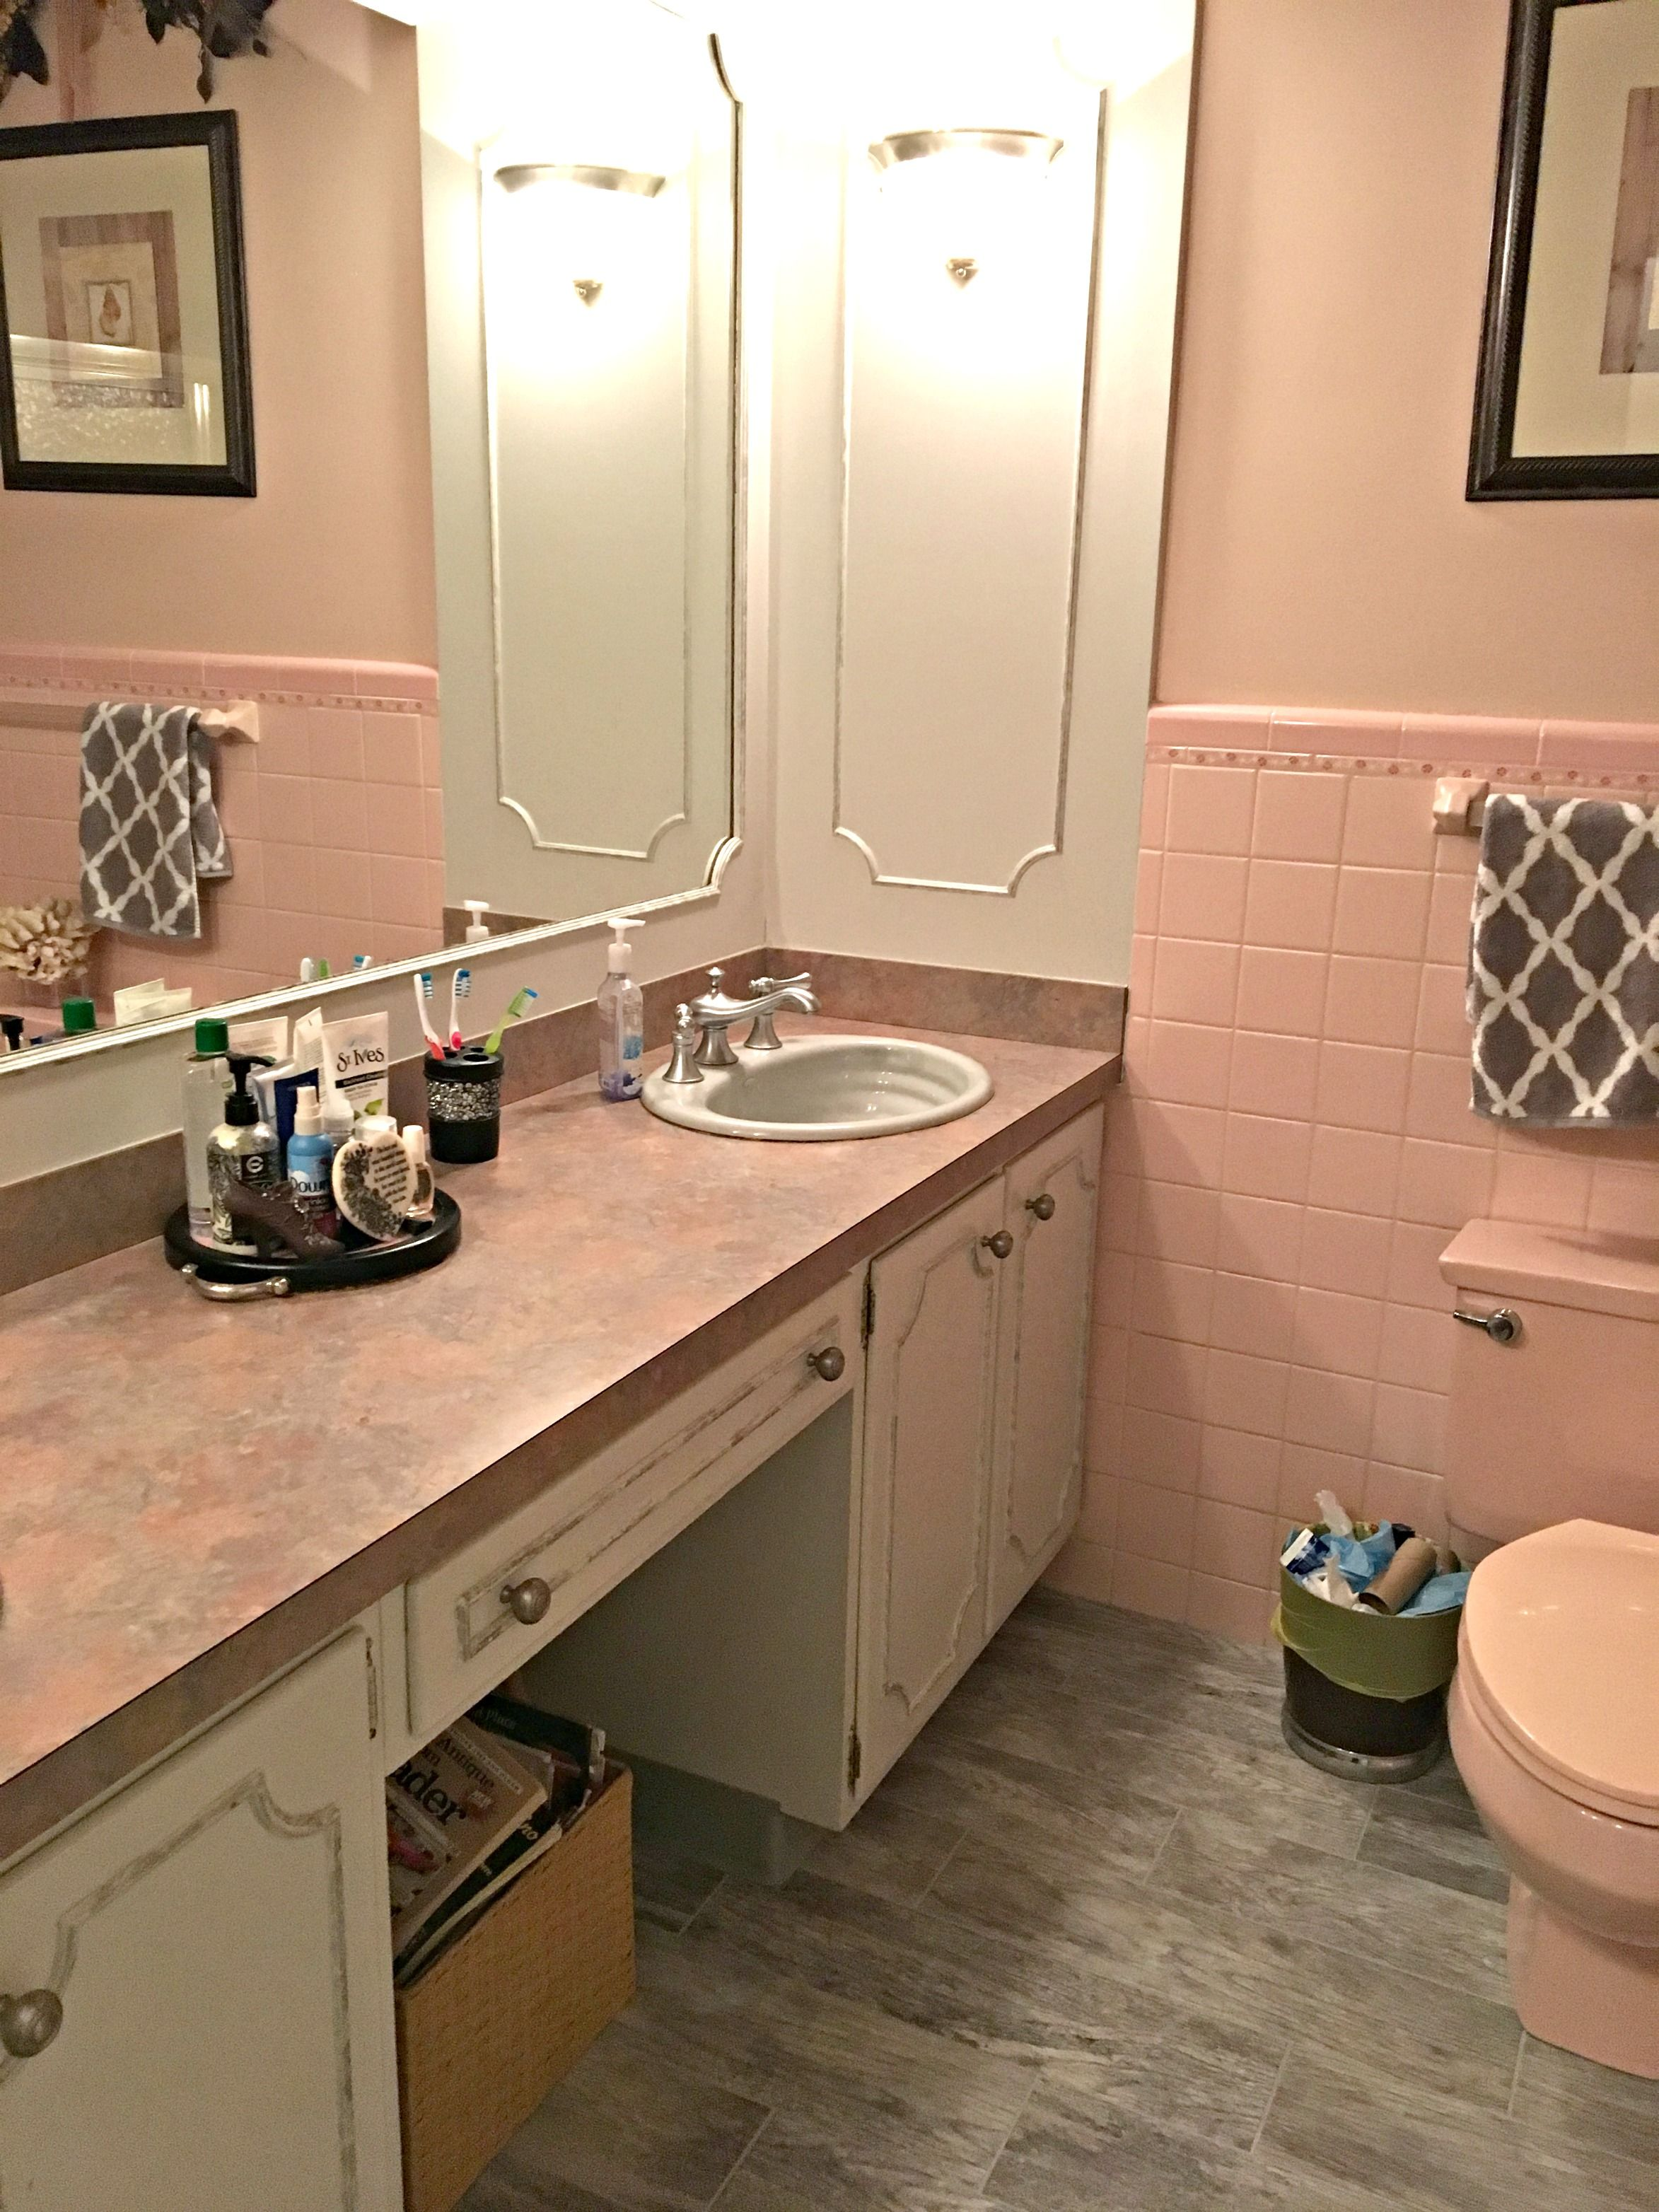 The Best Paint Colours To Update A Pink Or Dusty Rose Room Pink Bathroom Pink Bathroom Tiles Best Paint Colors